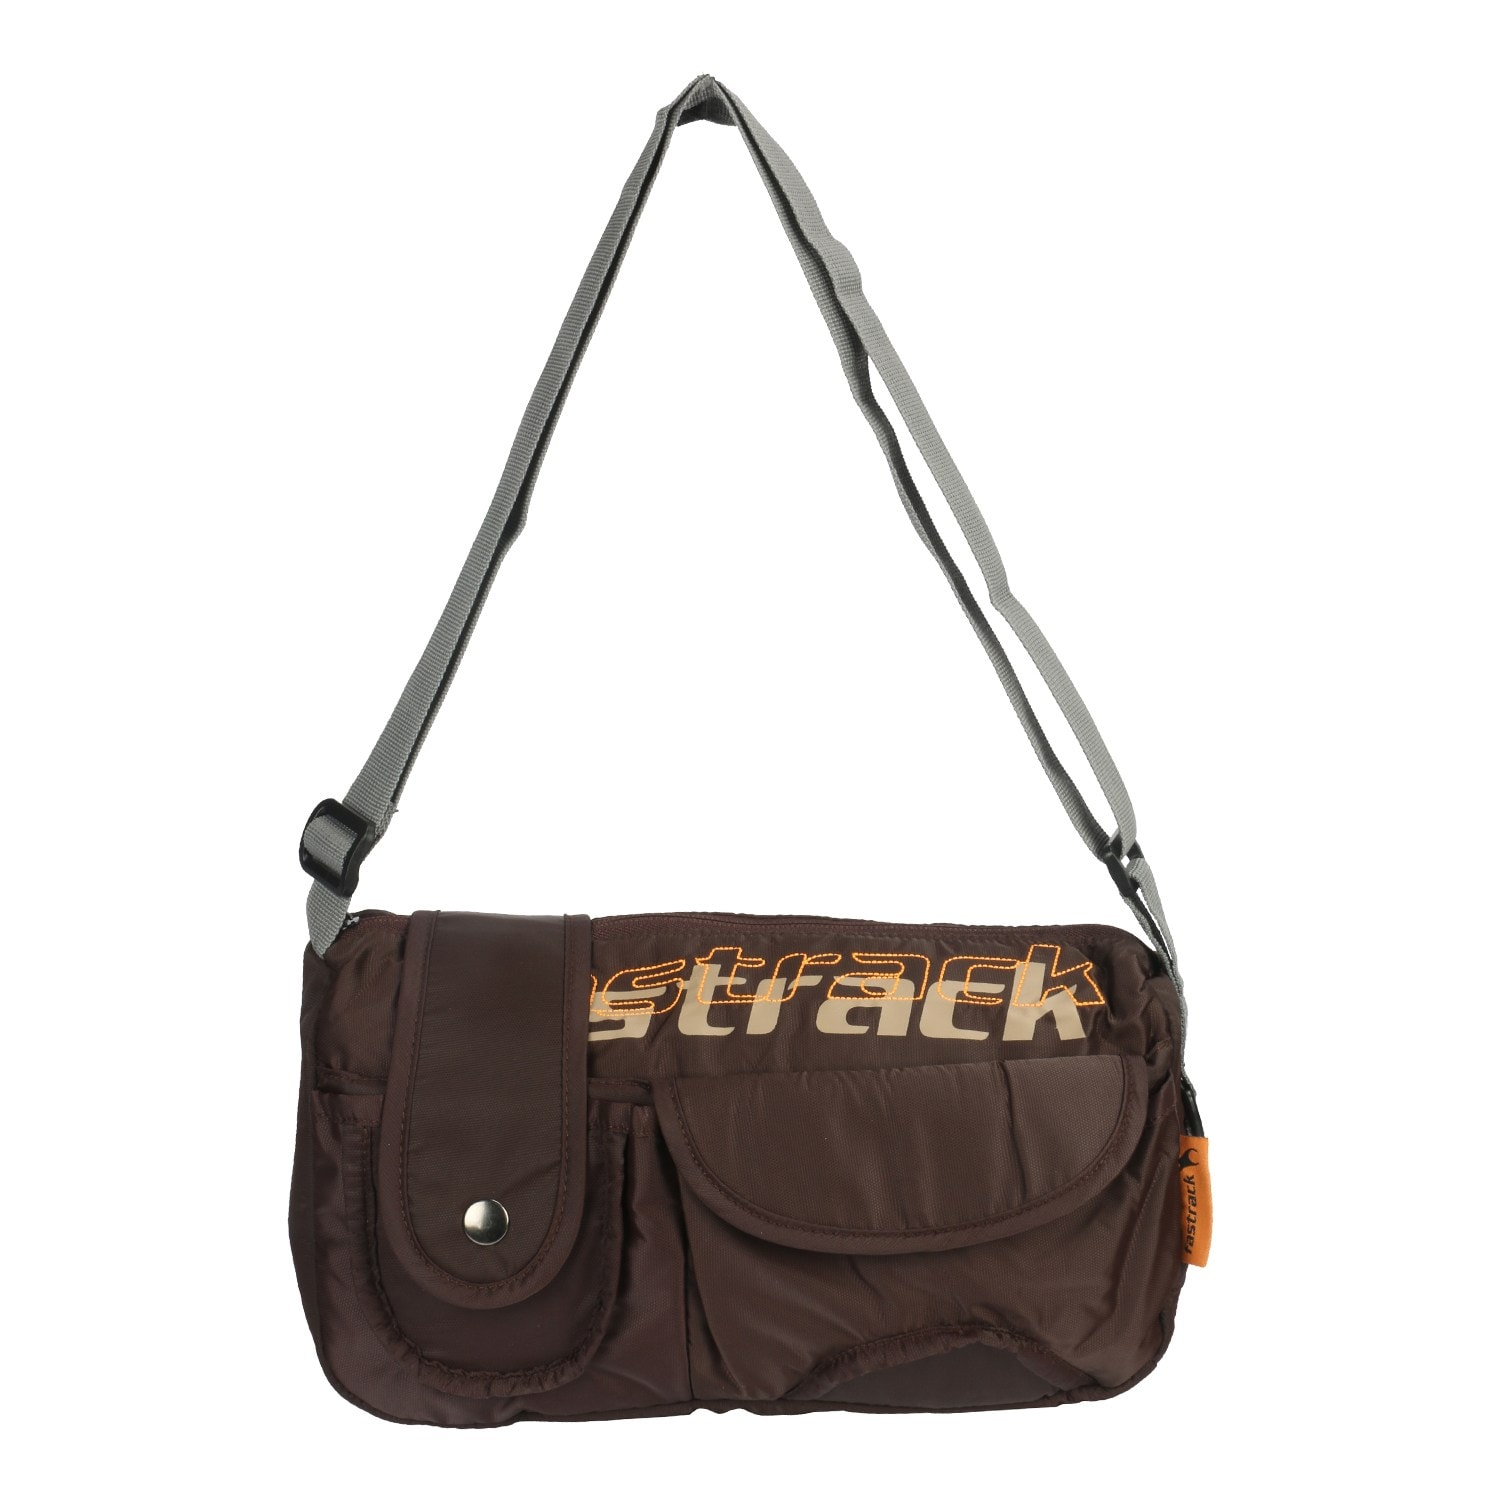 Ladies Sling Bags With Price - Fashion Handbags